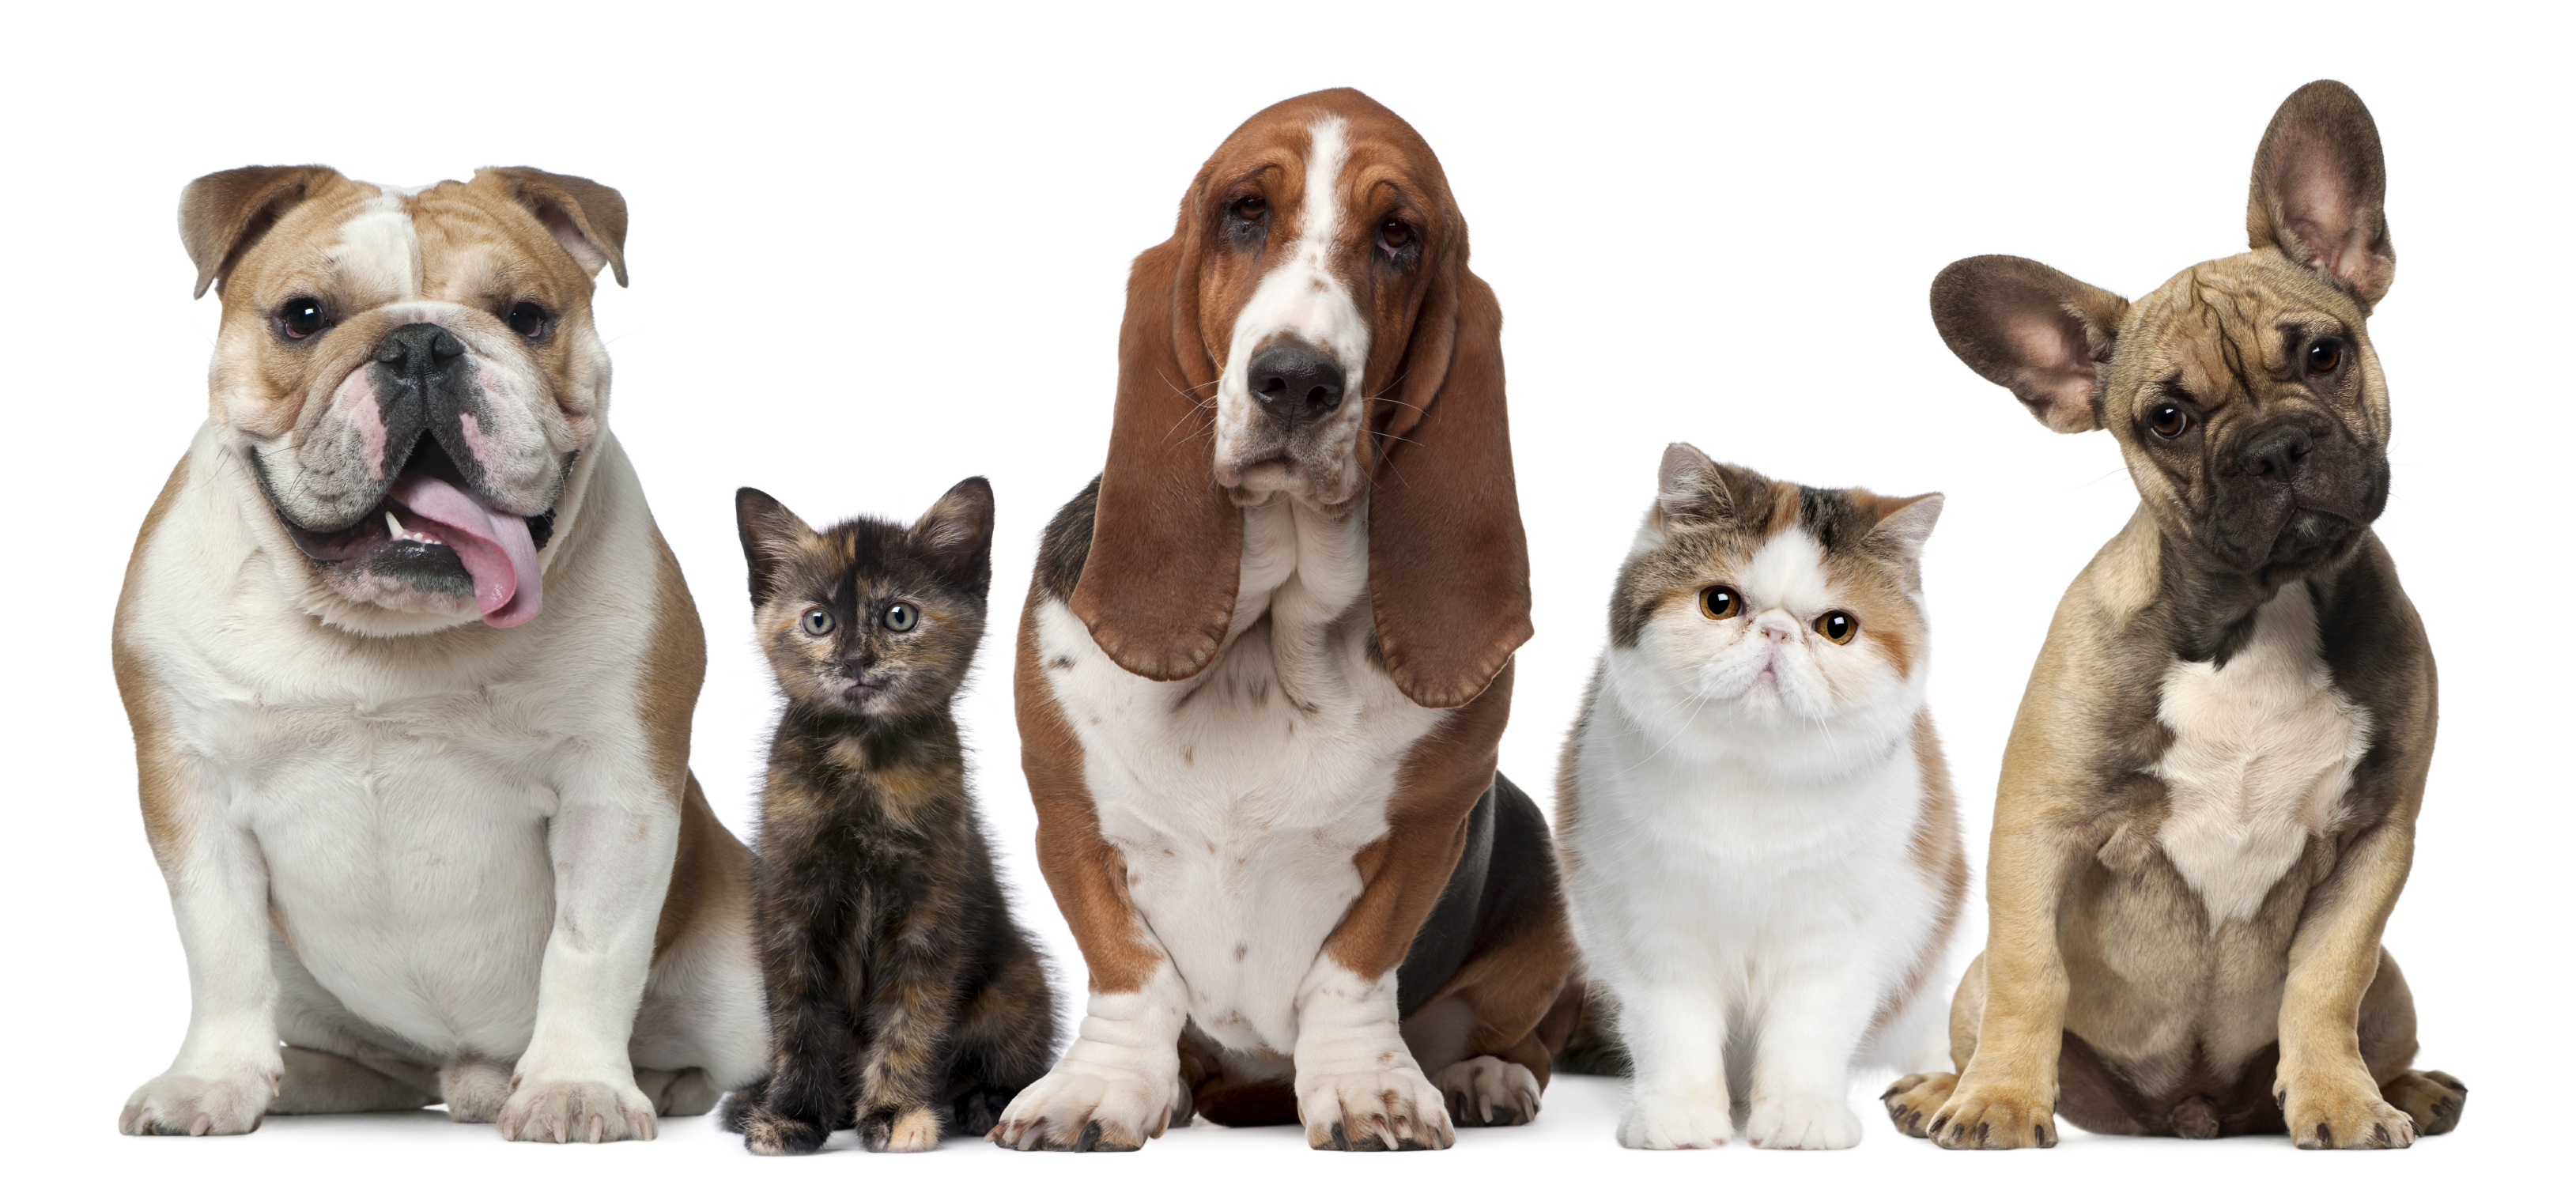 Insurance For Pet Health & Veterinary Care – Now That's Peace of Mind